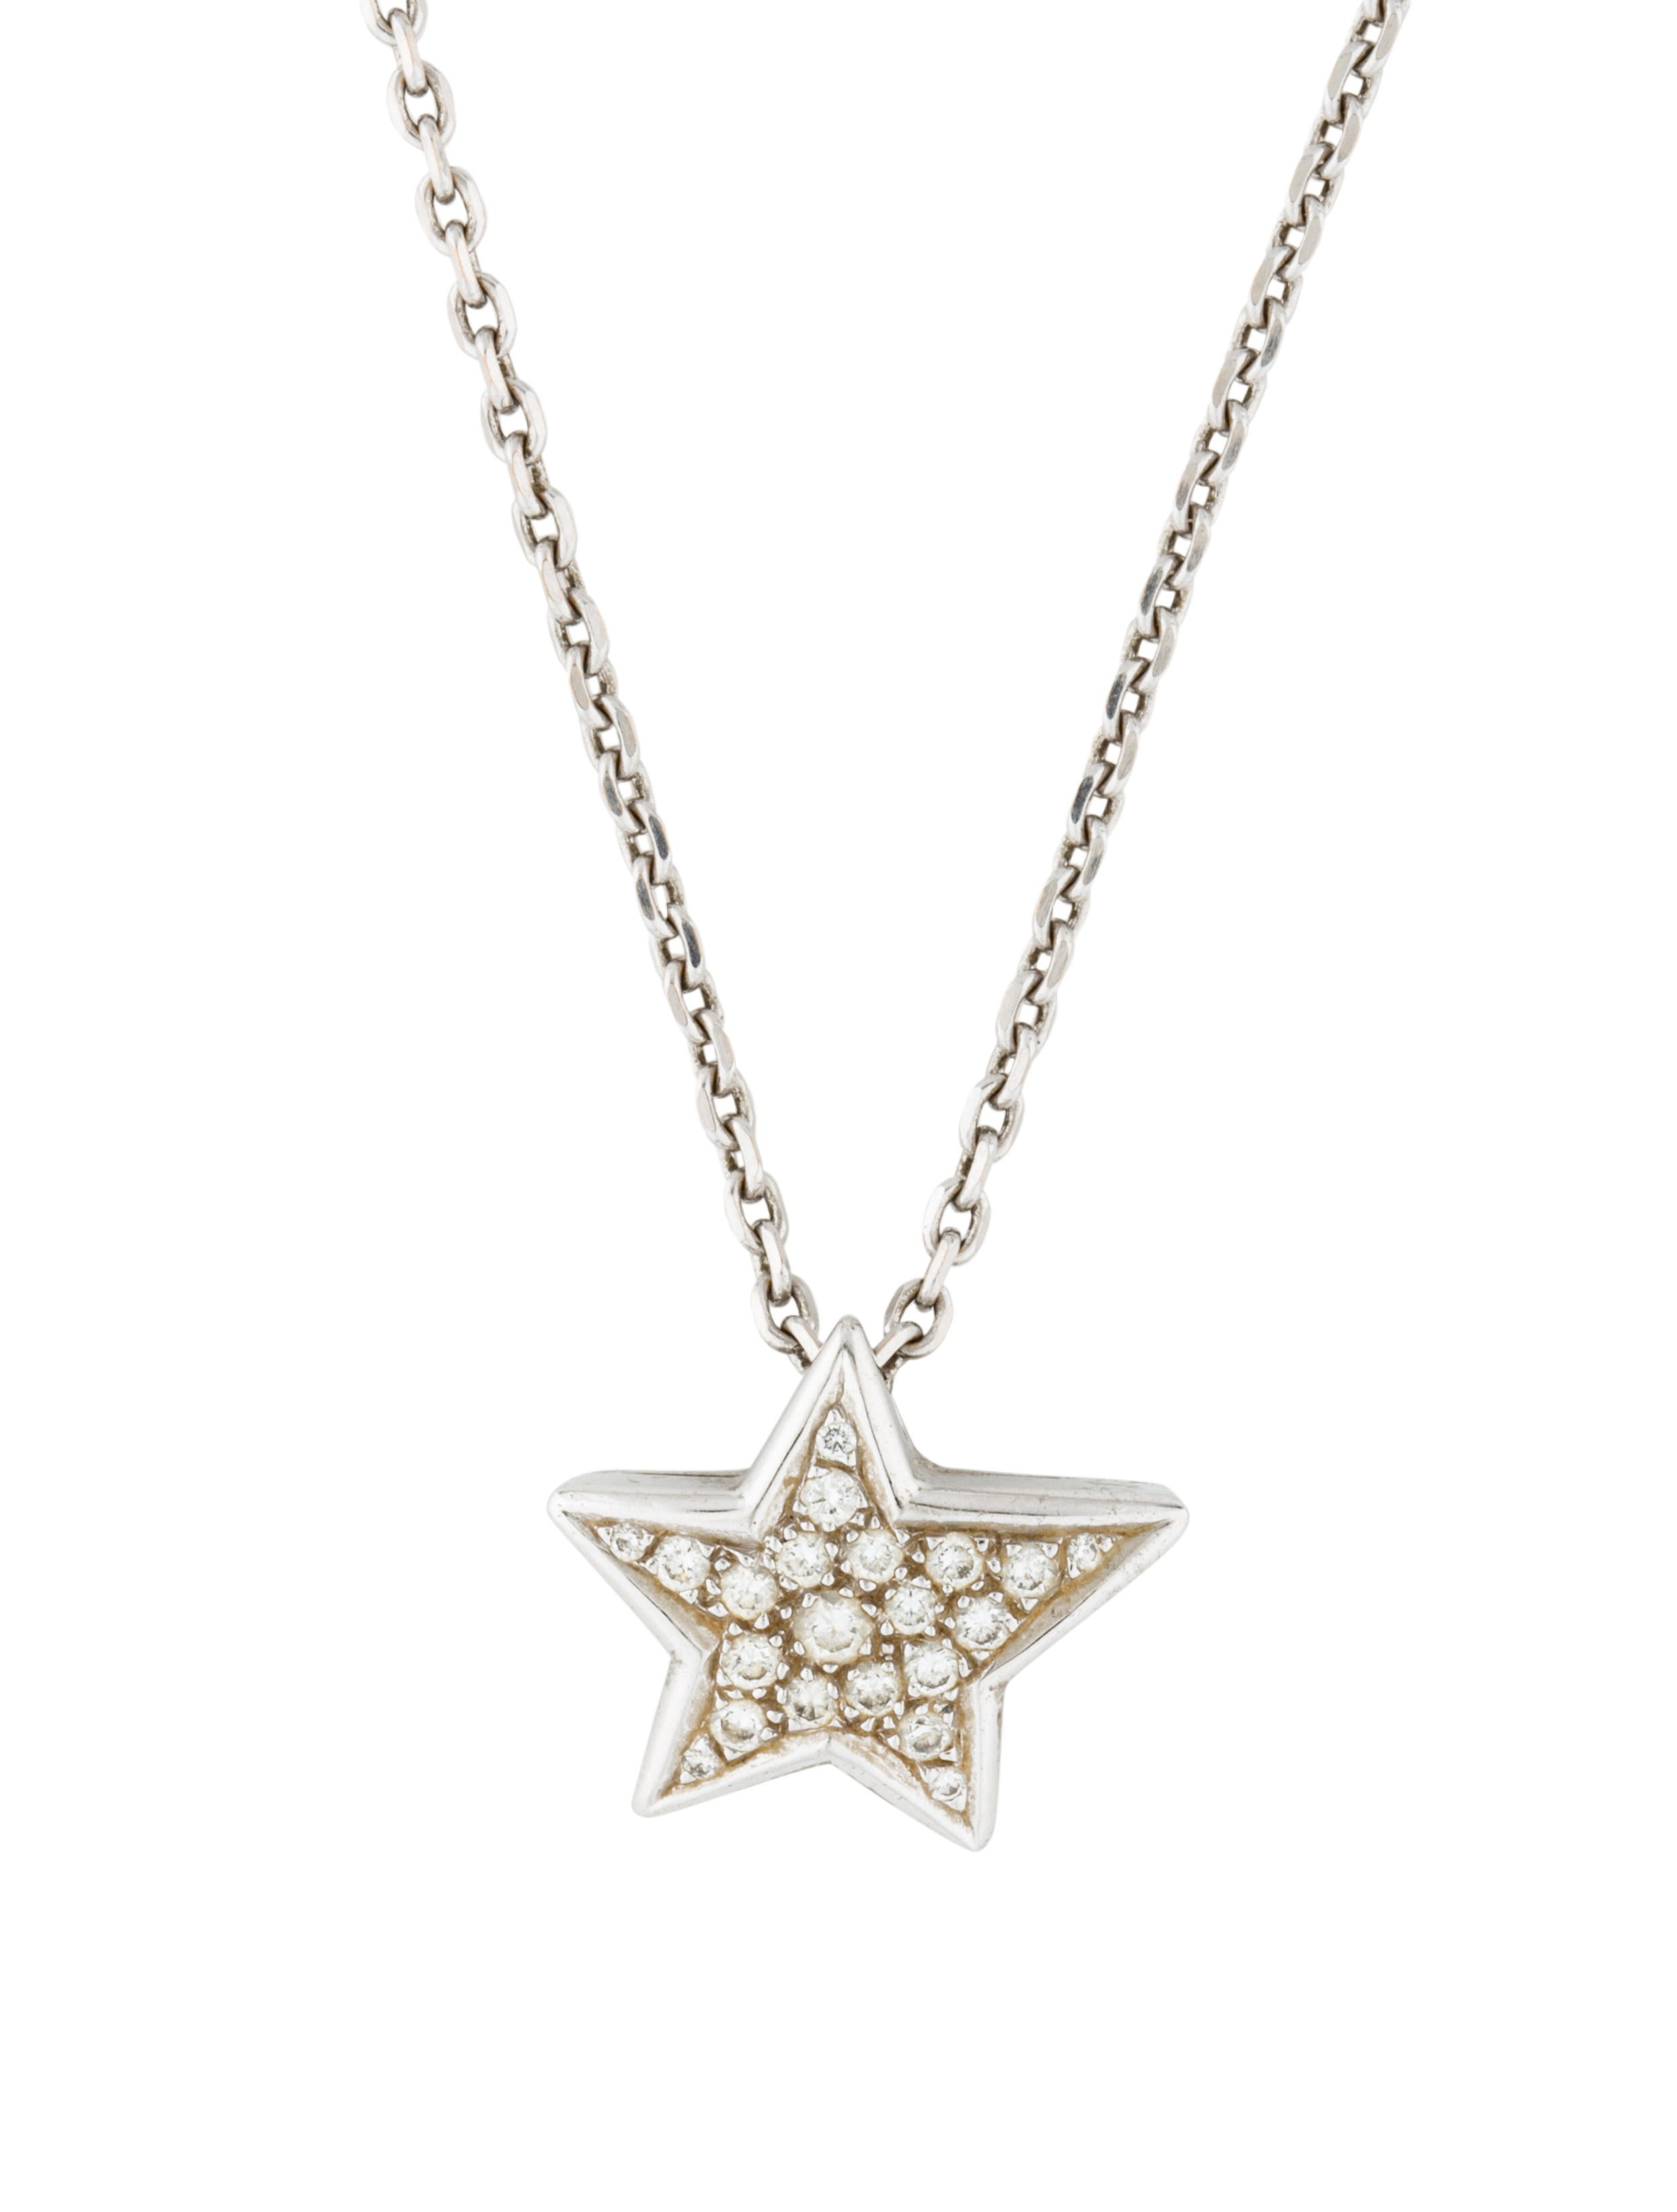 18k white gold diamond star pendant necklace necklaces 18k white gold diamond star pendant aloadofball Choice Image